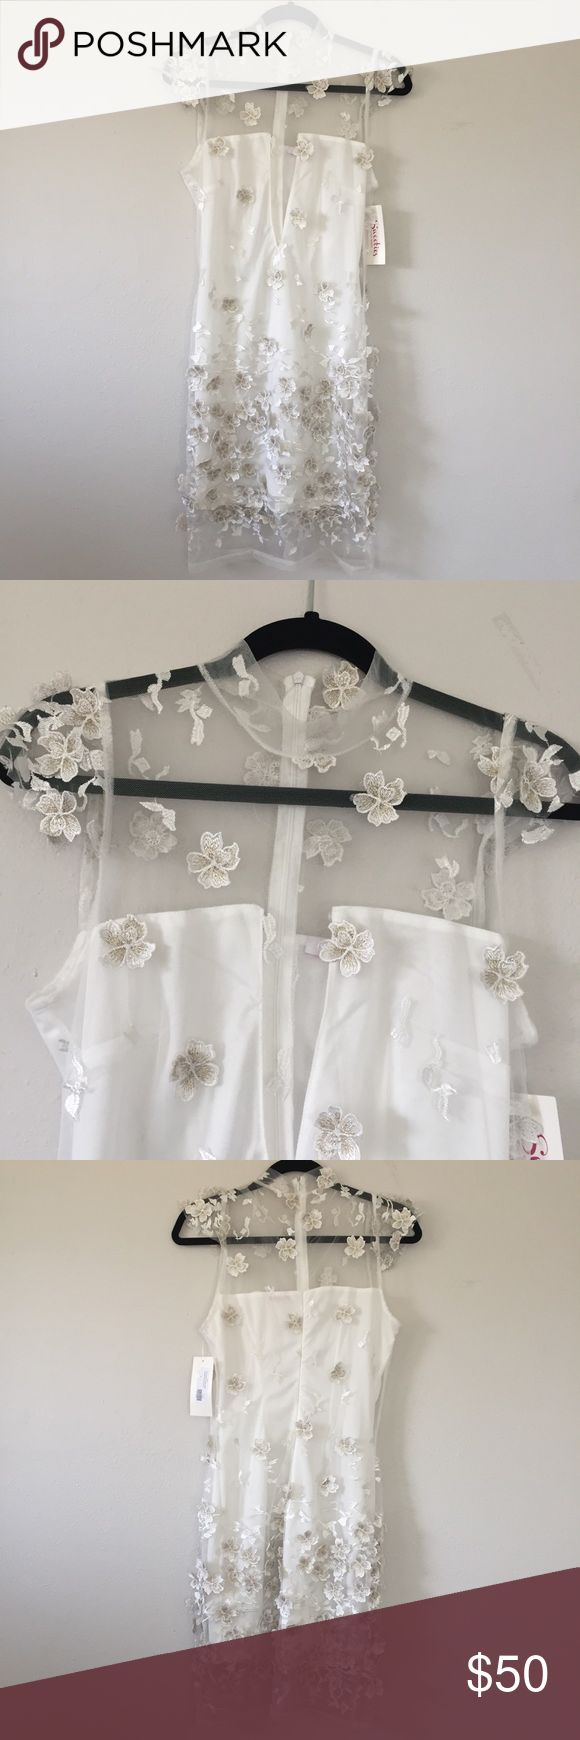 """3D Flower Dress Brand new with tags High neck and plunge  Not sure if this runs a little small so please refer to measurements below.  Approx measurements: Armpit to armpit: 17""""  Length: 37.5"""" Dresses Mini"""